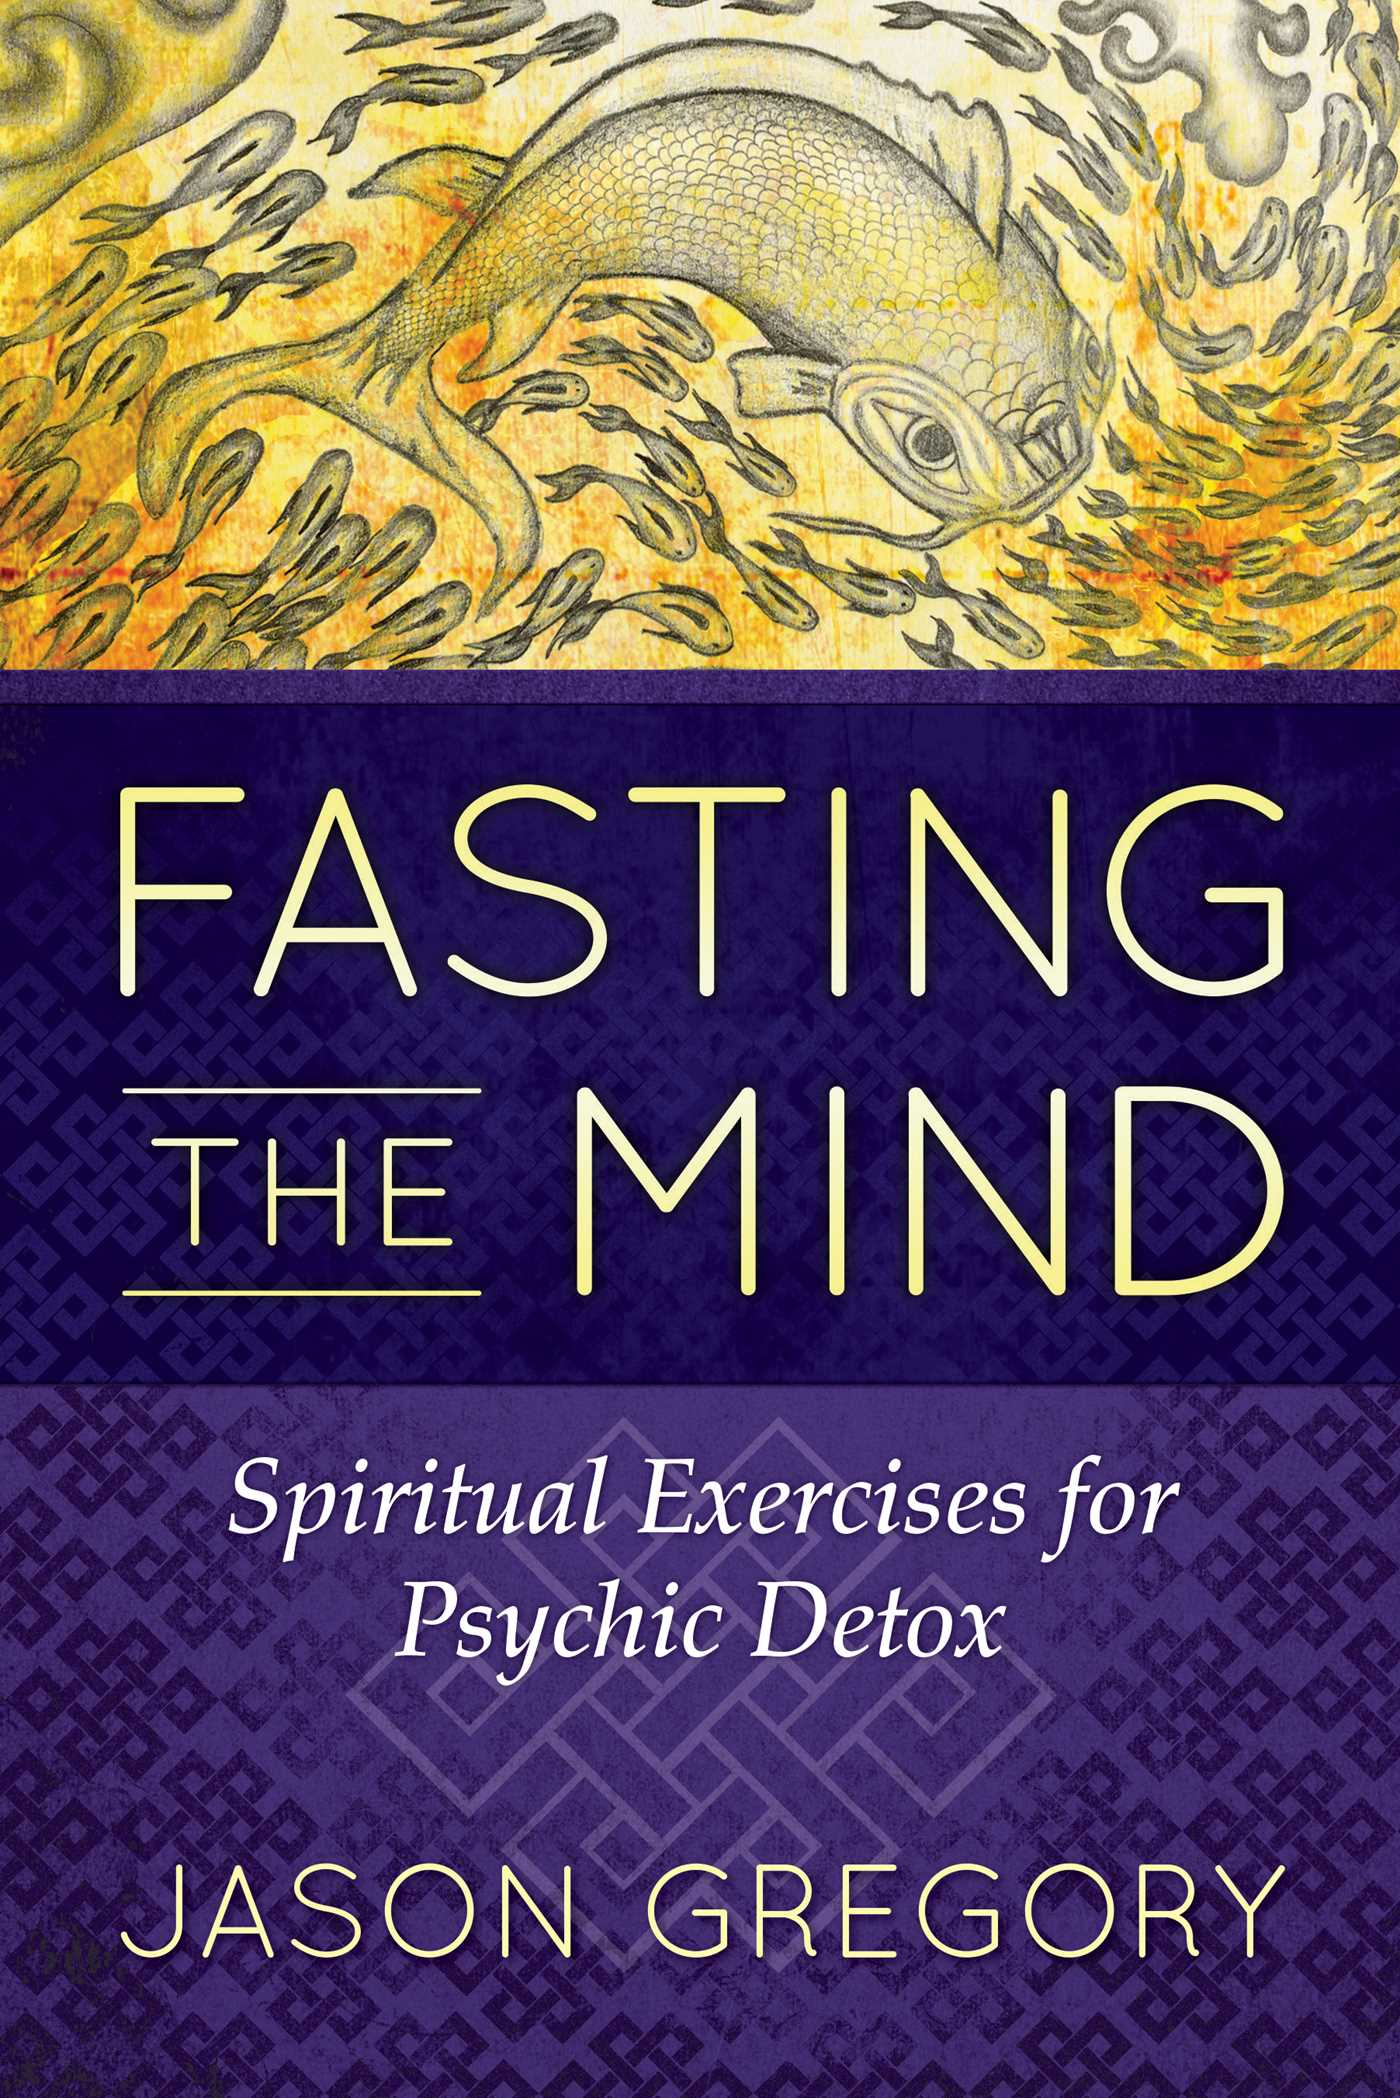 Fasting the mind 9781620556467 hr